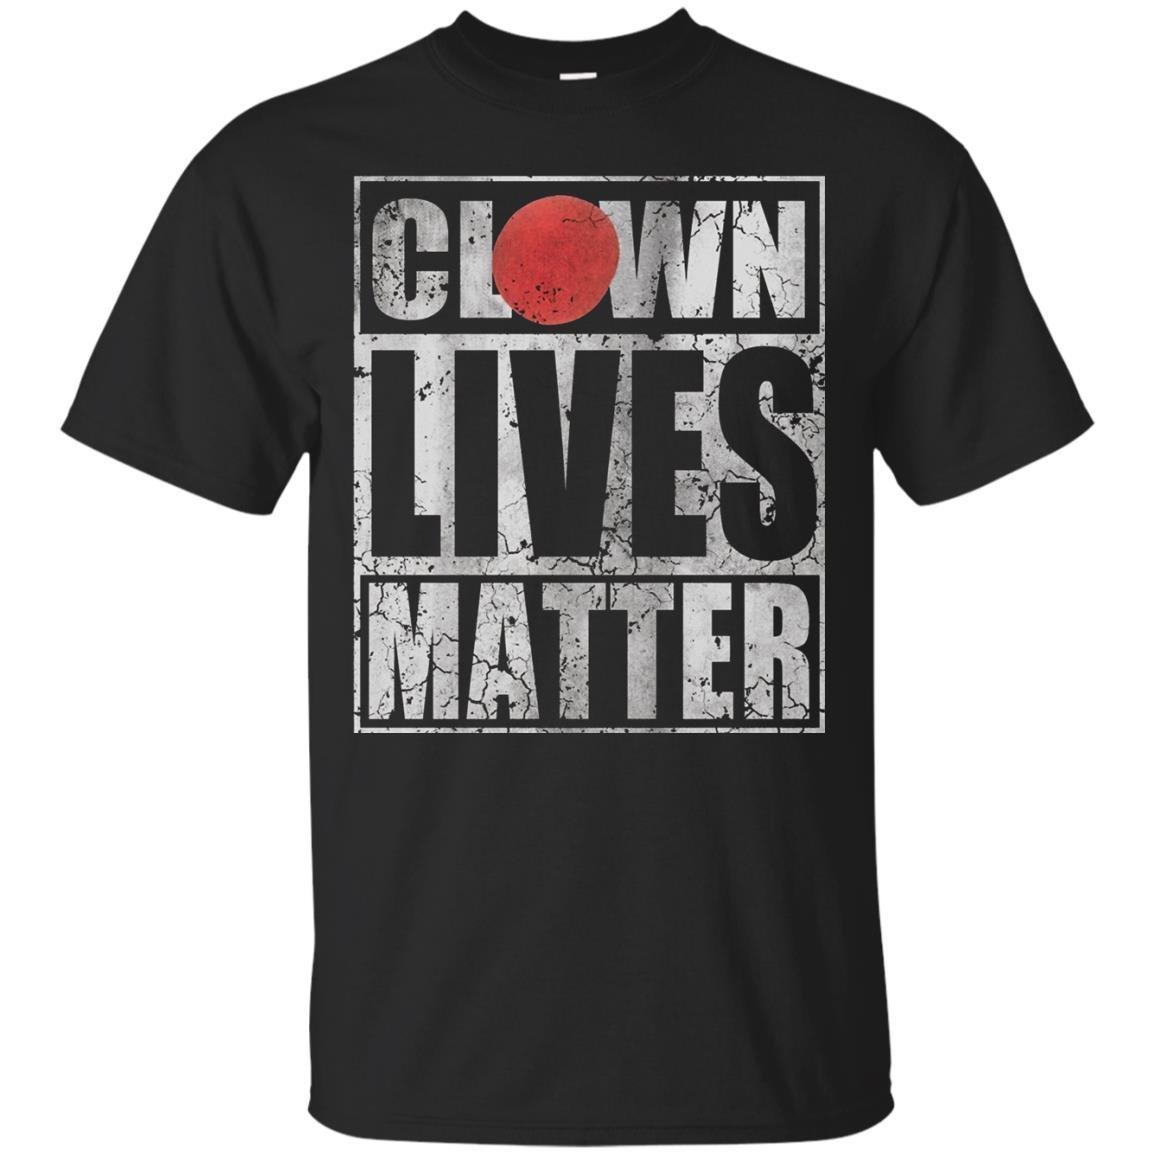 Clown lives Matter t shirt